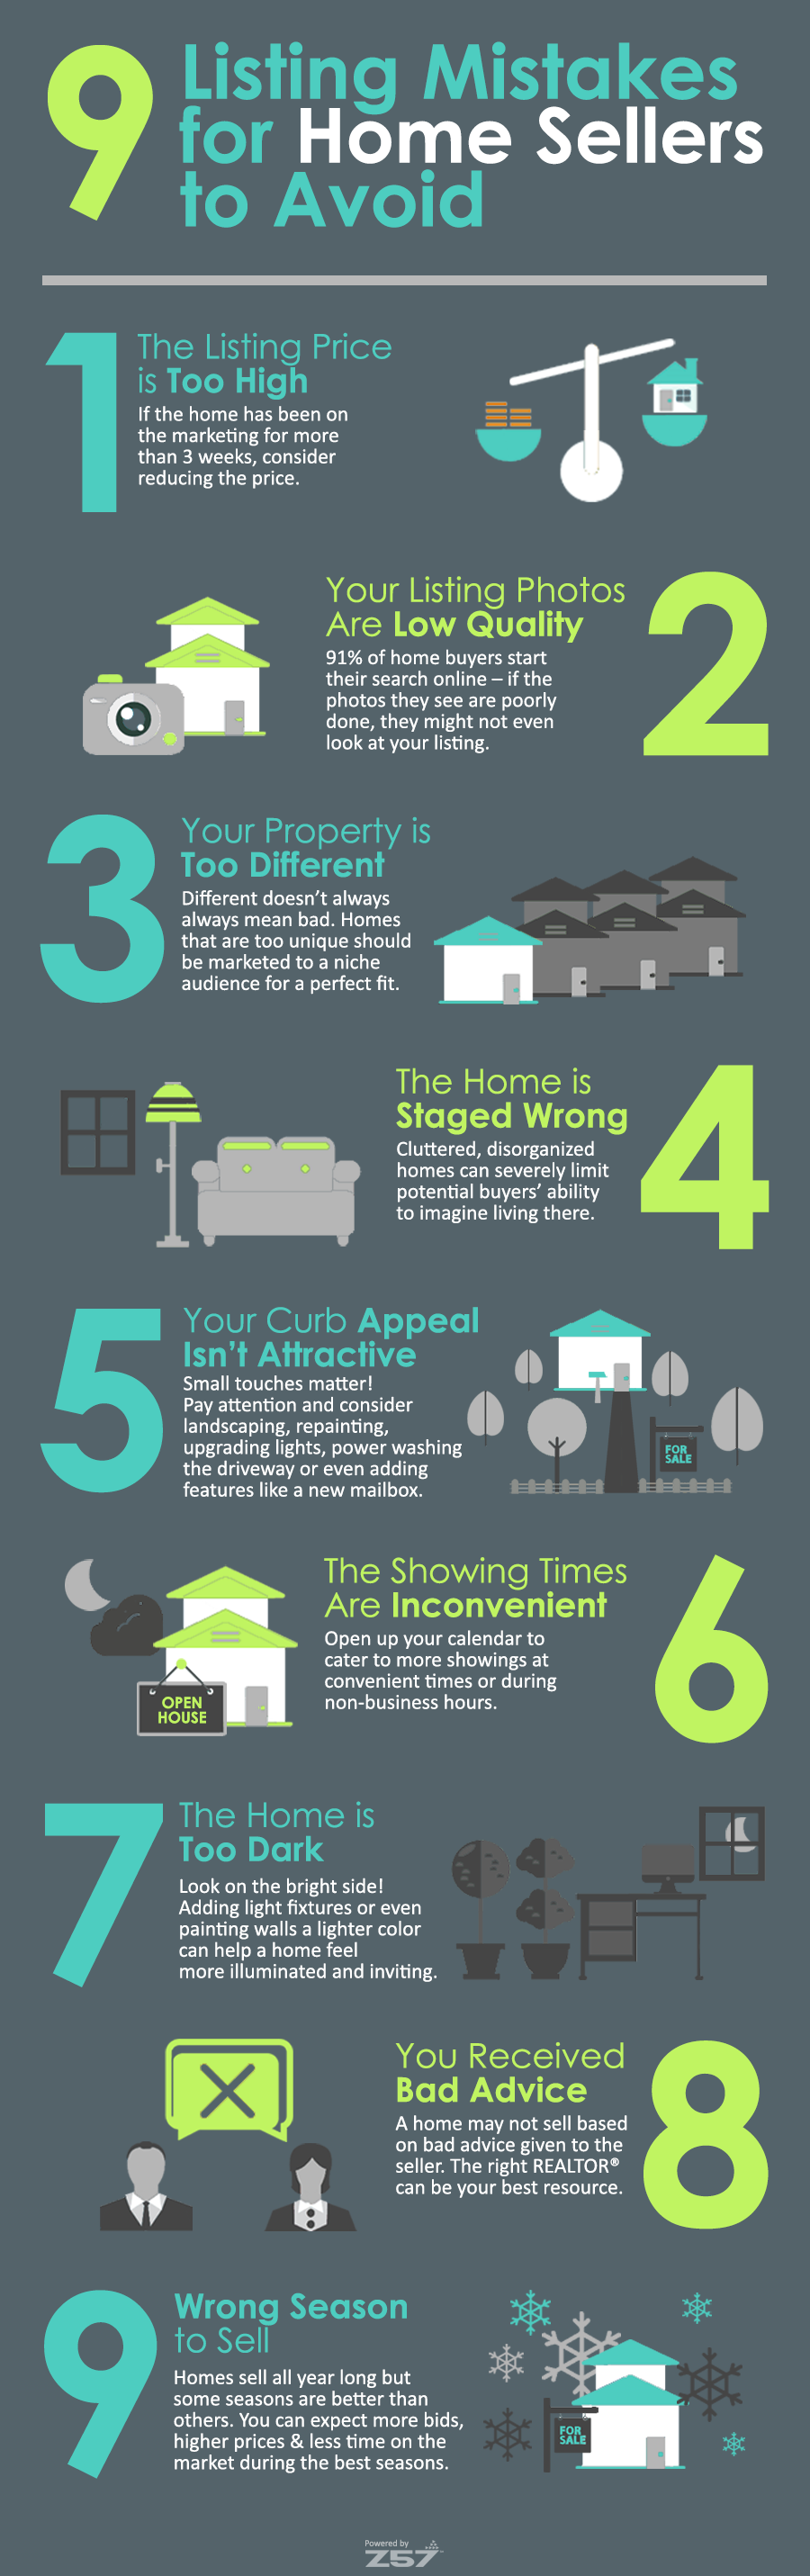 Mistakes of listing home